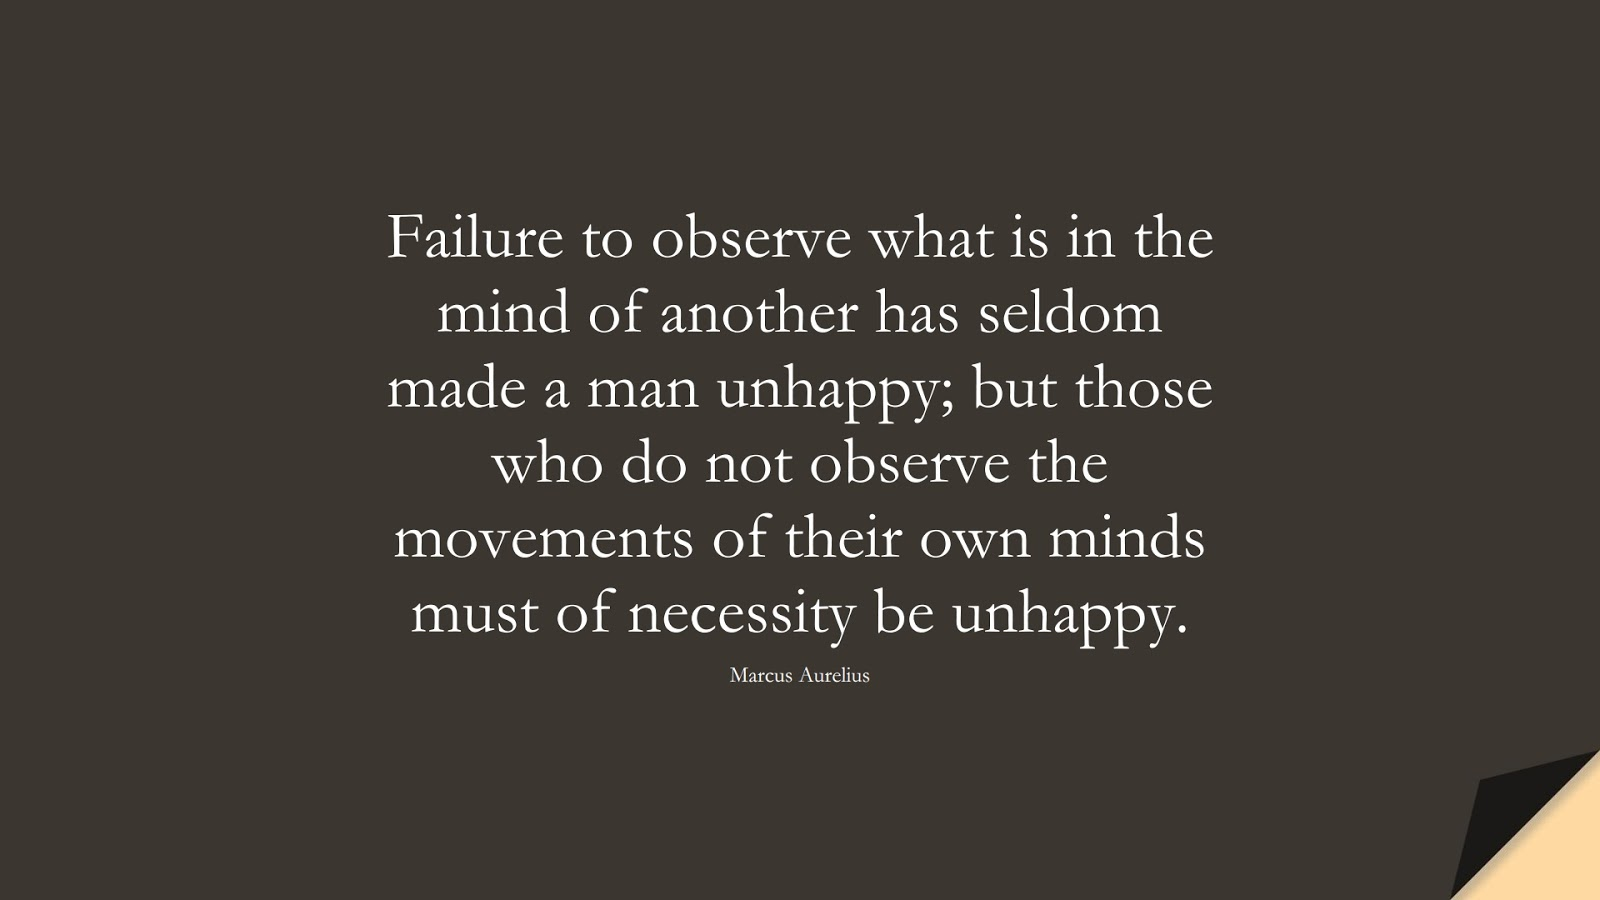 Failure to observe what is in the mind of another has seldom made a man unhappy; but those who do not observe the movements of their own minds must of necessity be unhappy. (Marcus Aurelius);  #MarcusAureliusQuotes